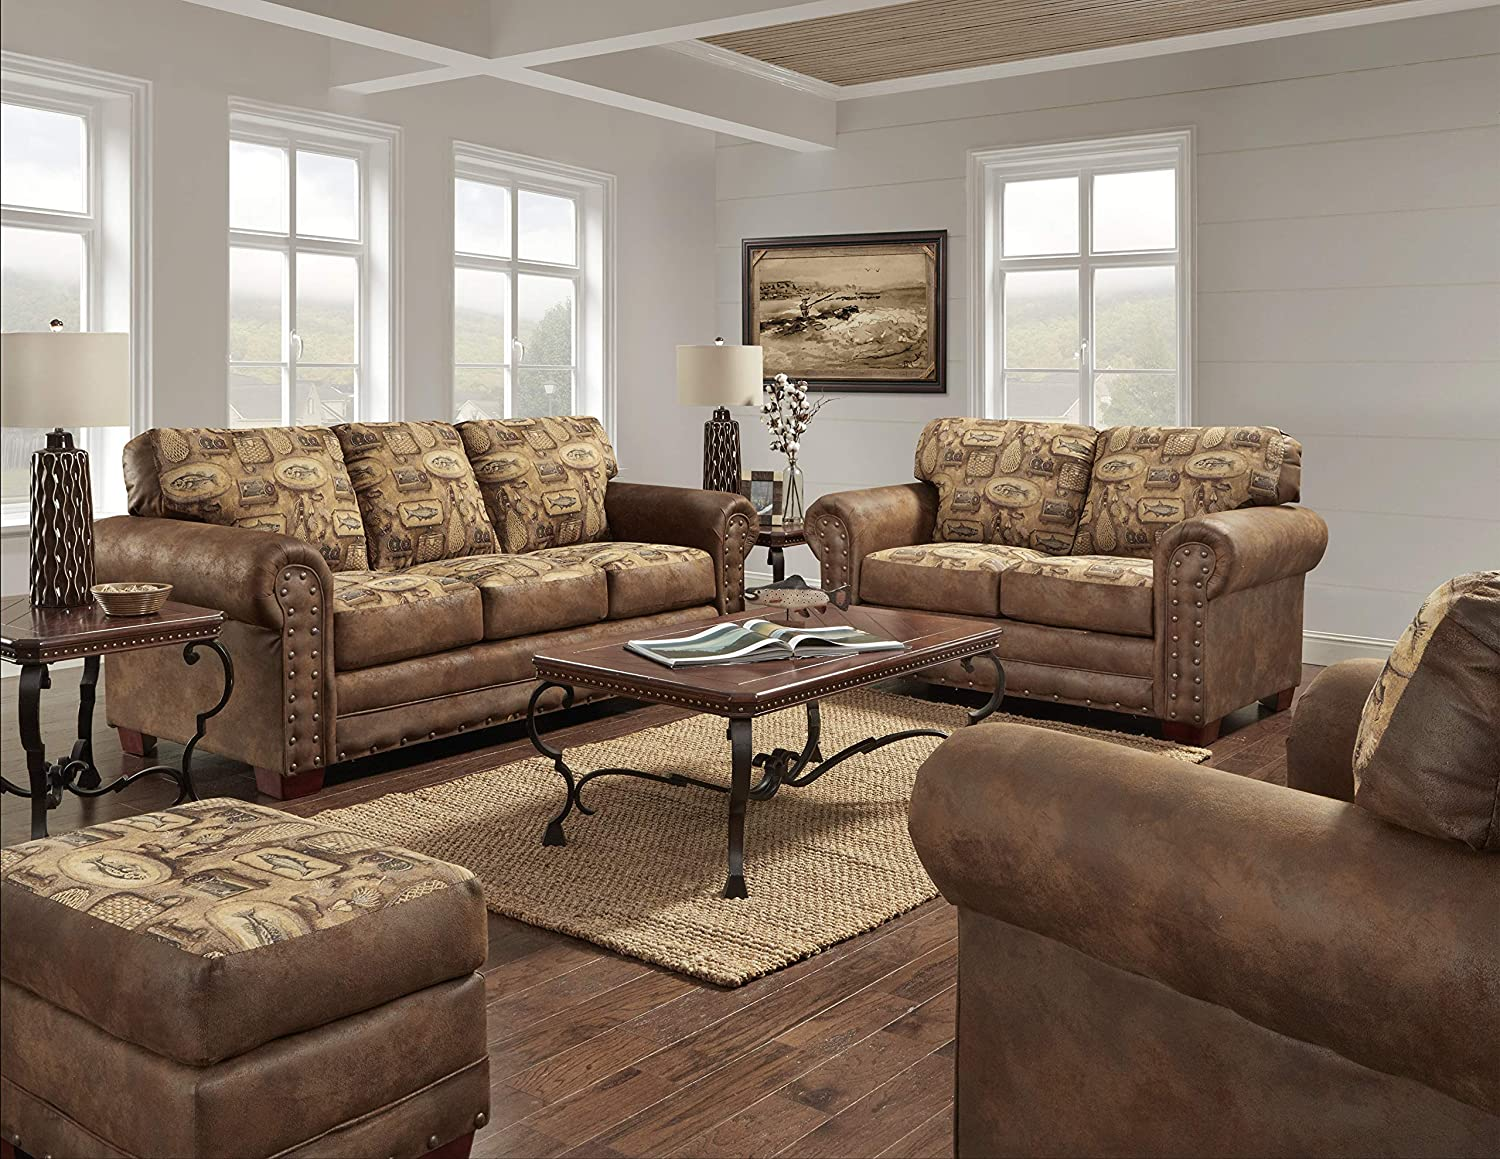 American Furniture Classics Model River Bend 4-Piece Sleeper upholstery set, Brown